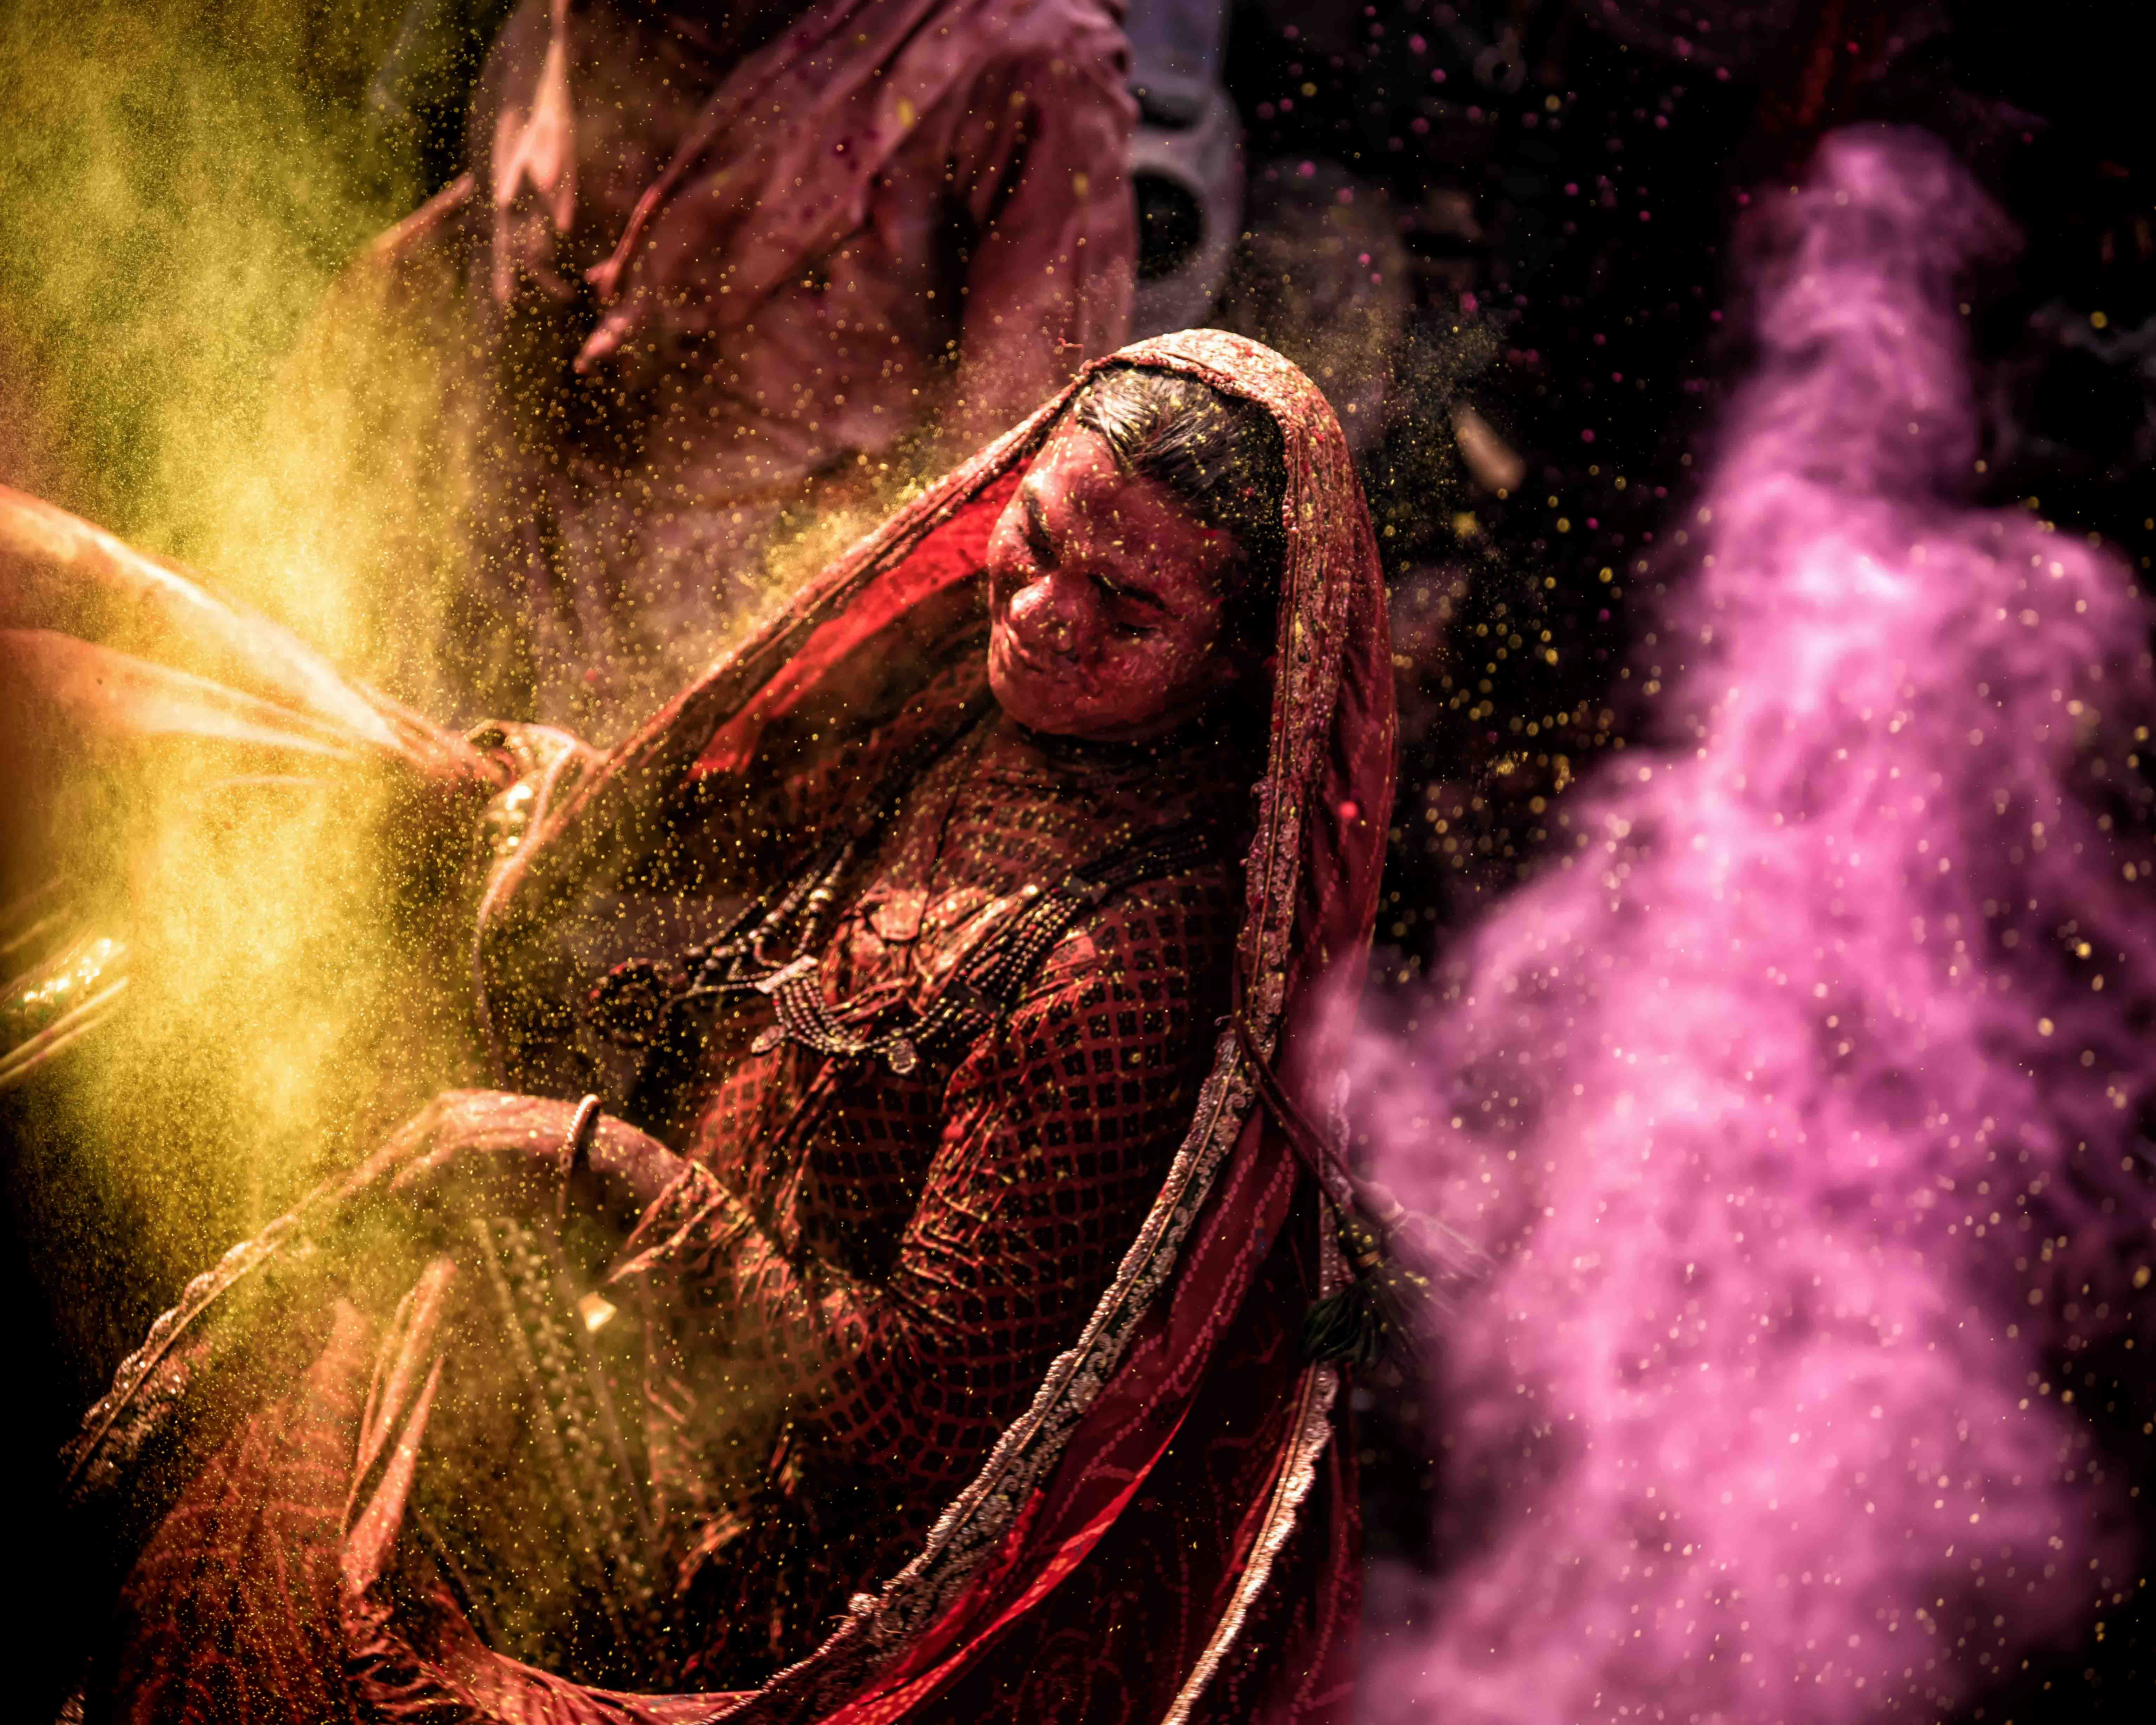 a dancing gopi at holi, one of the festivals of india